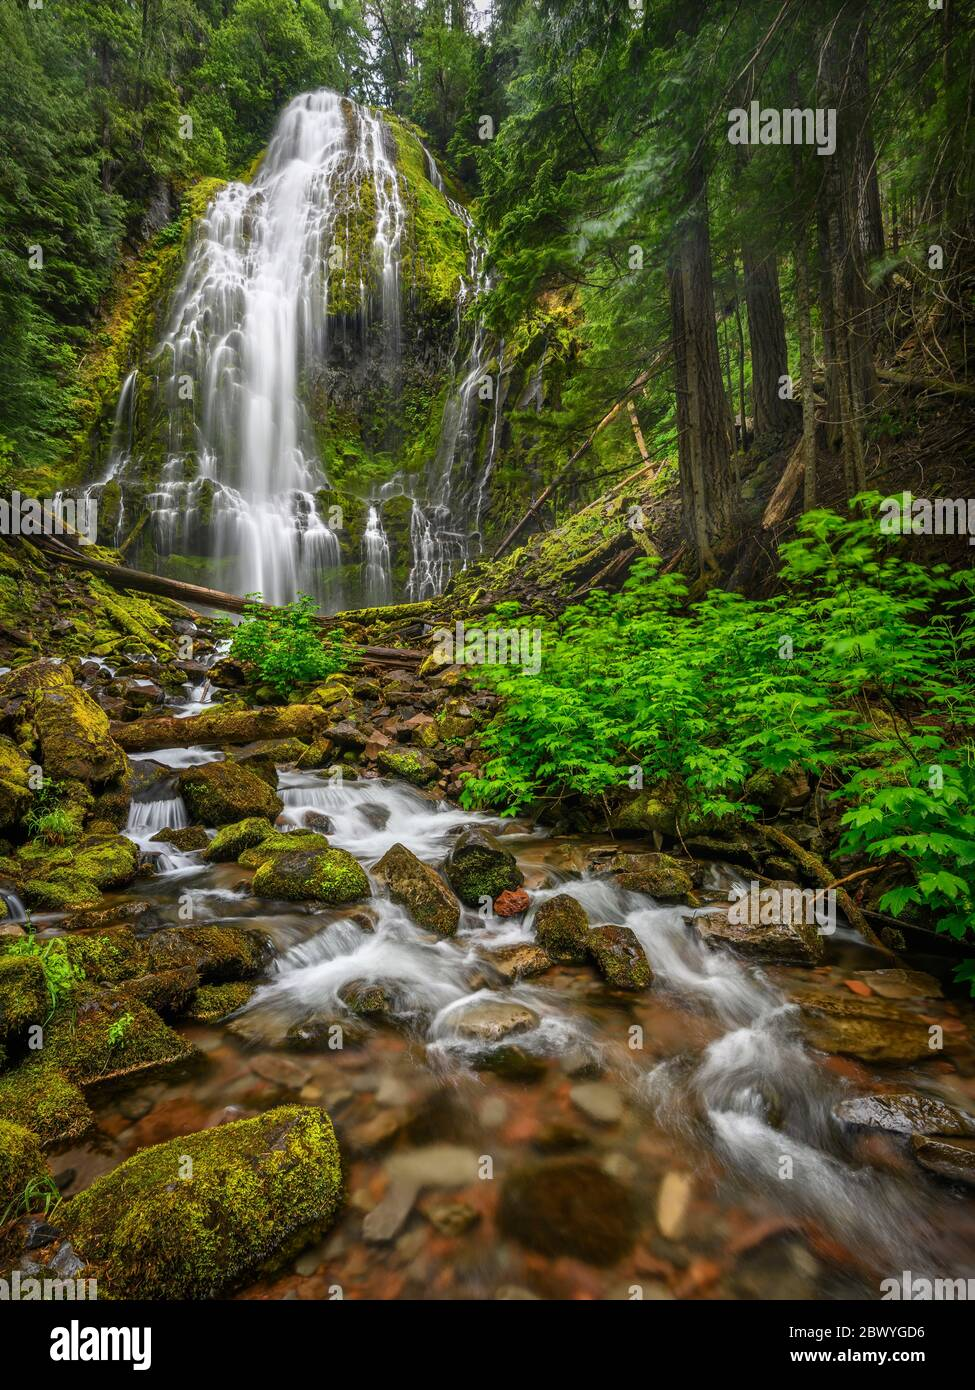 Lower Proxy Falls; Proxy Falls Trail, Three Sisters Wilderness, Willamette National Forest, Cascade Mountains, Oregon. Stock Photo